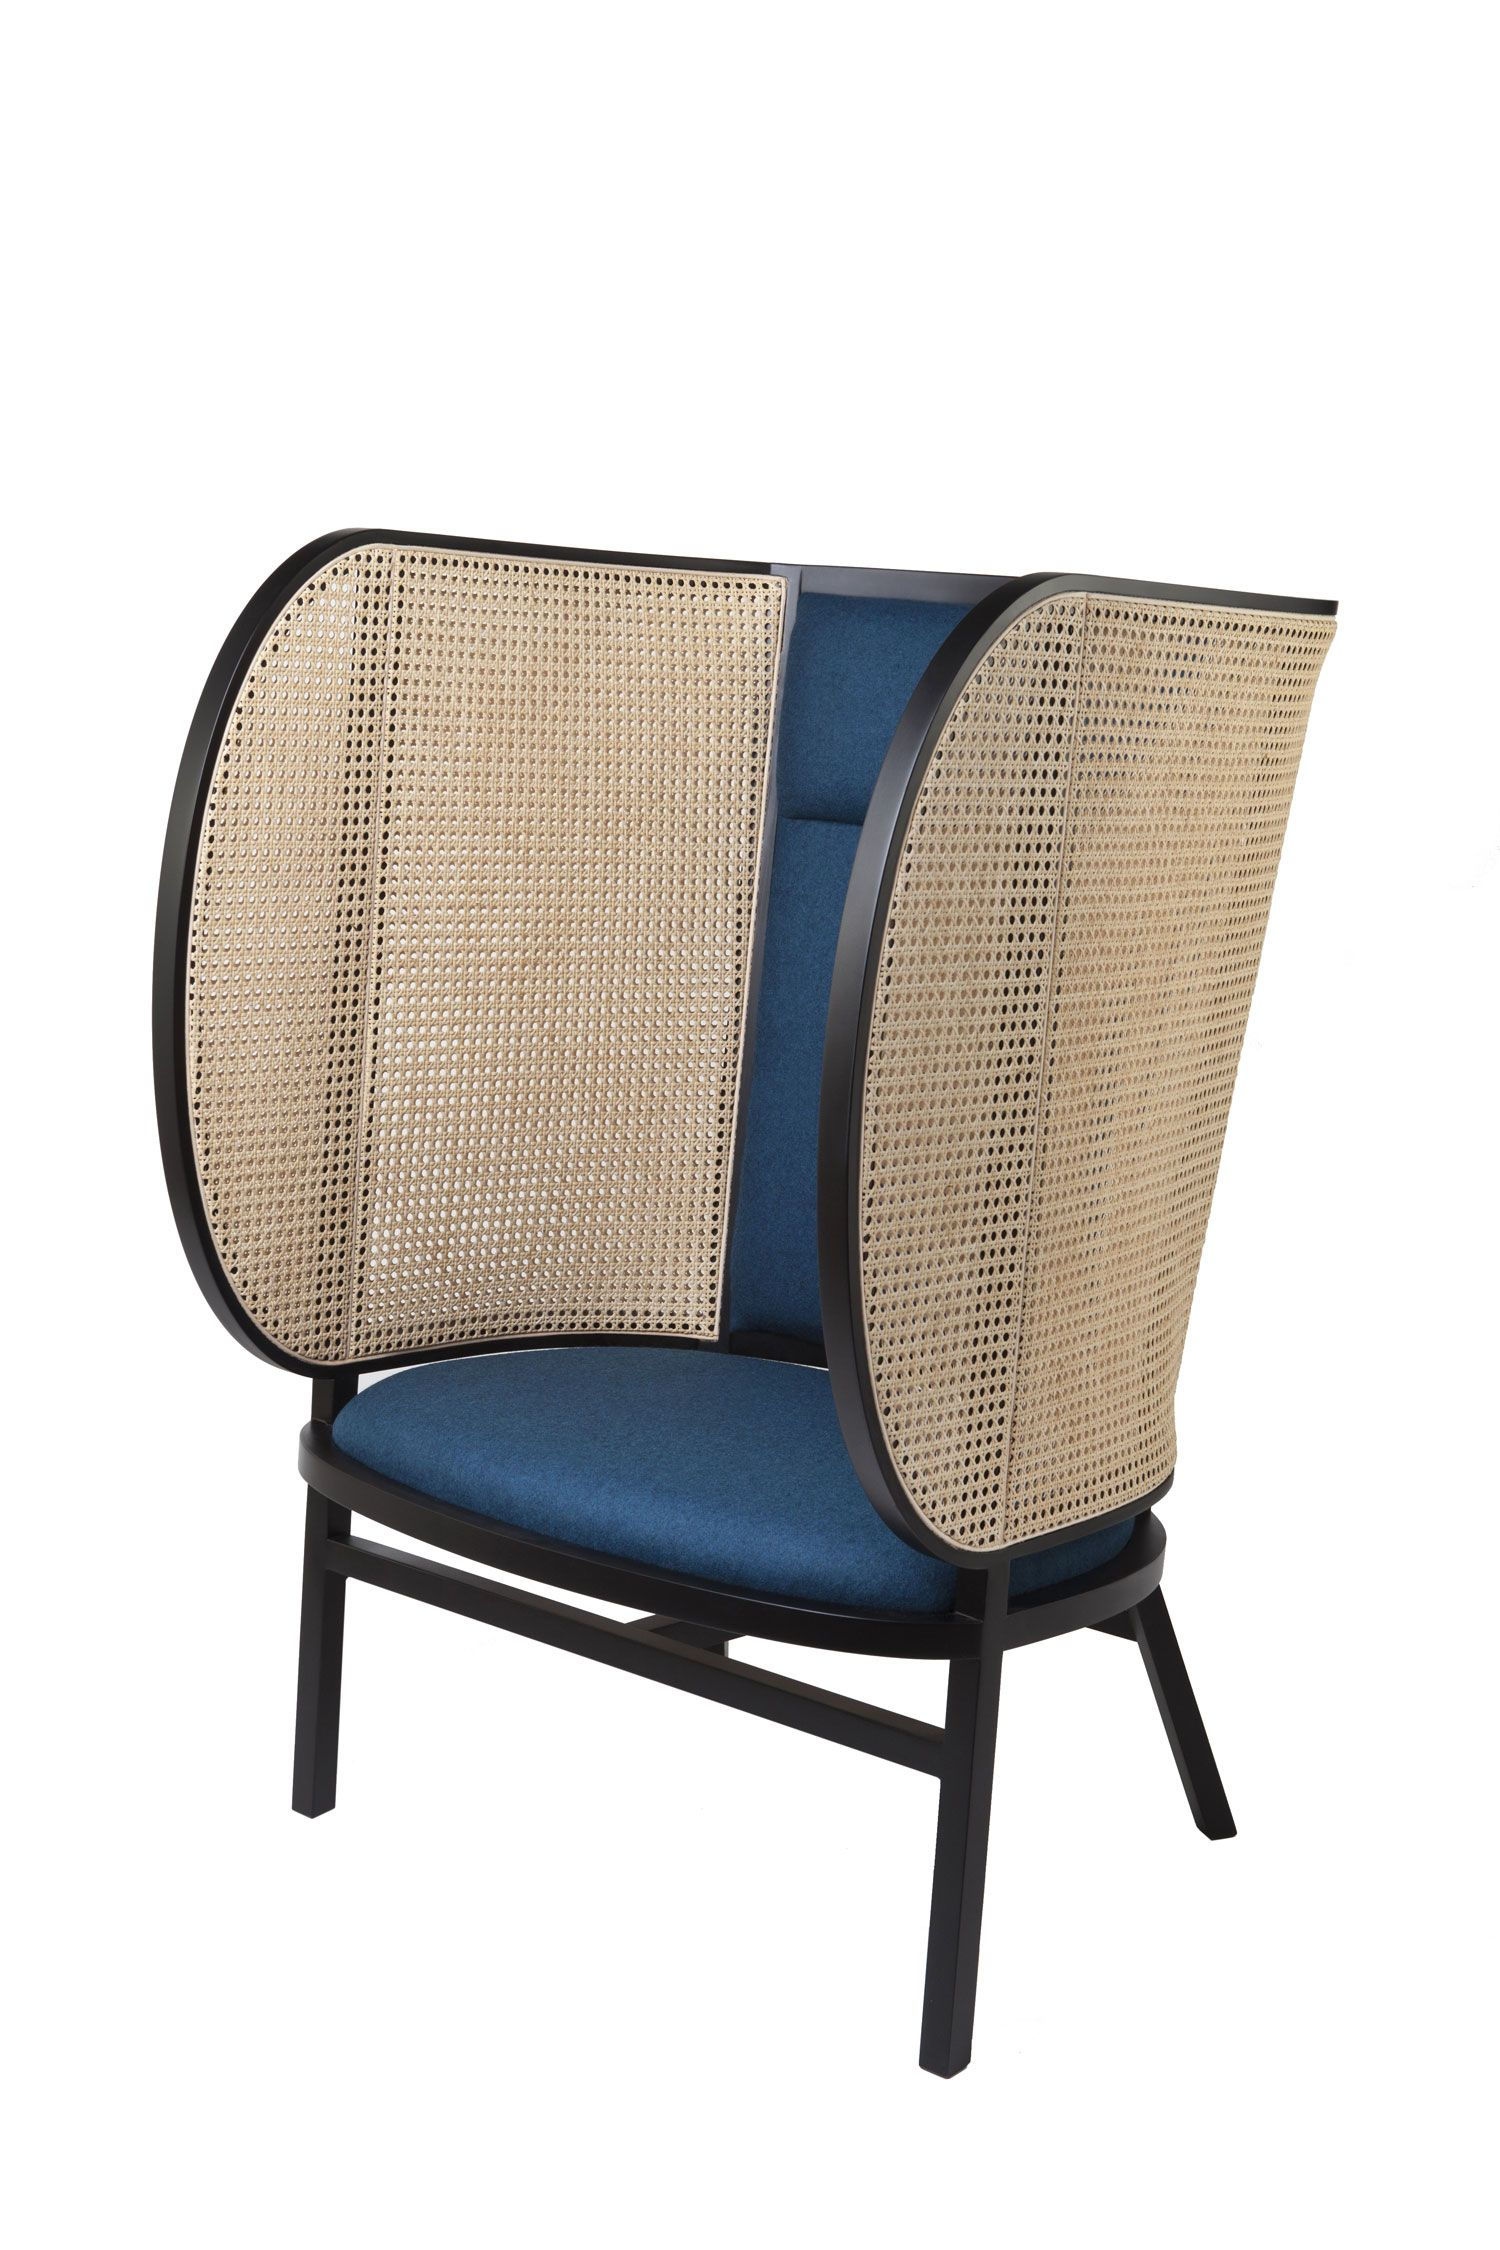 Gebruder Thonet HIDEOUT Lounge Chair by Front Best of Salone Del Mobile 2015